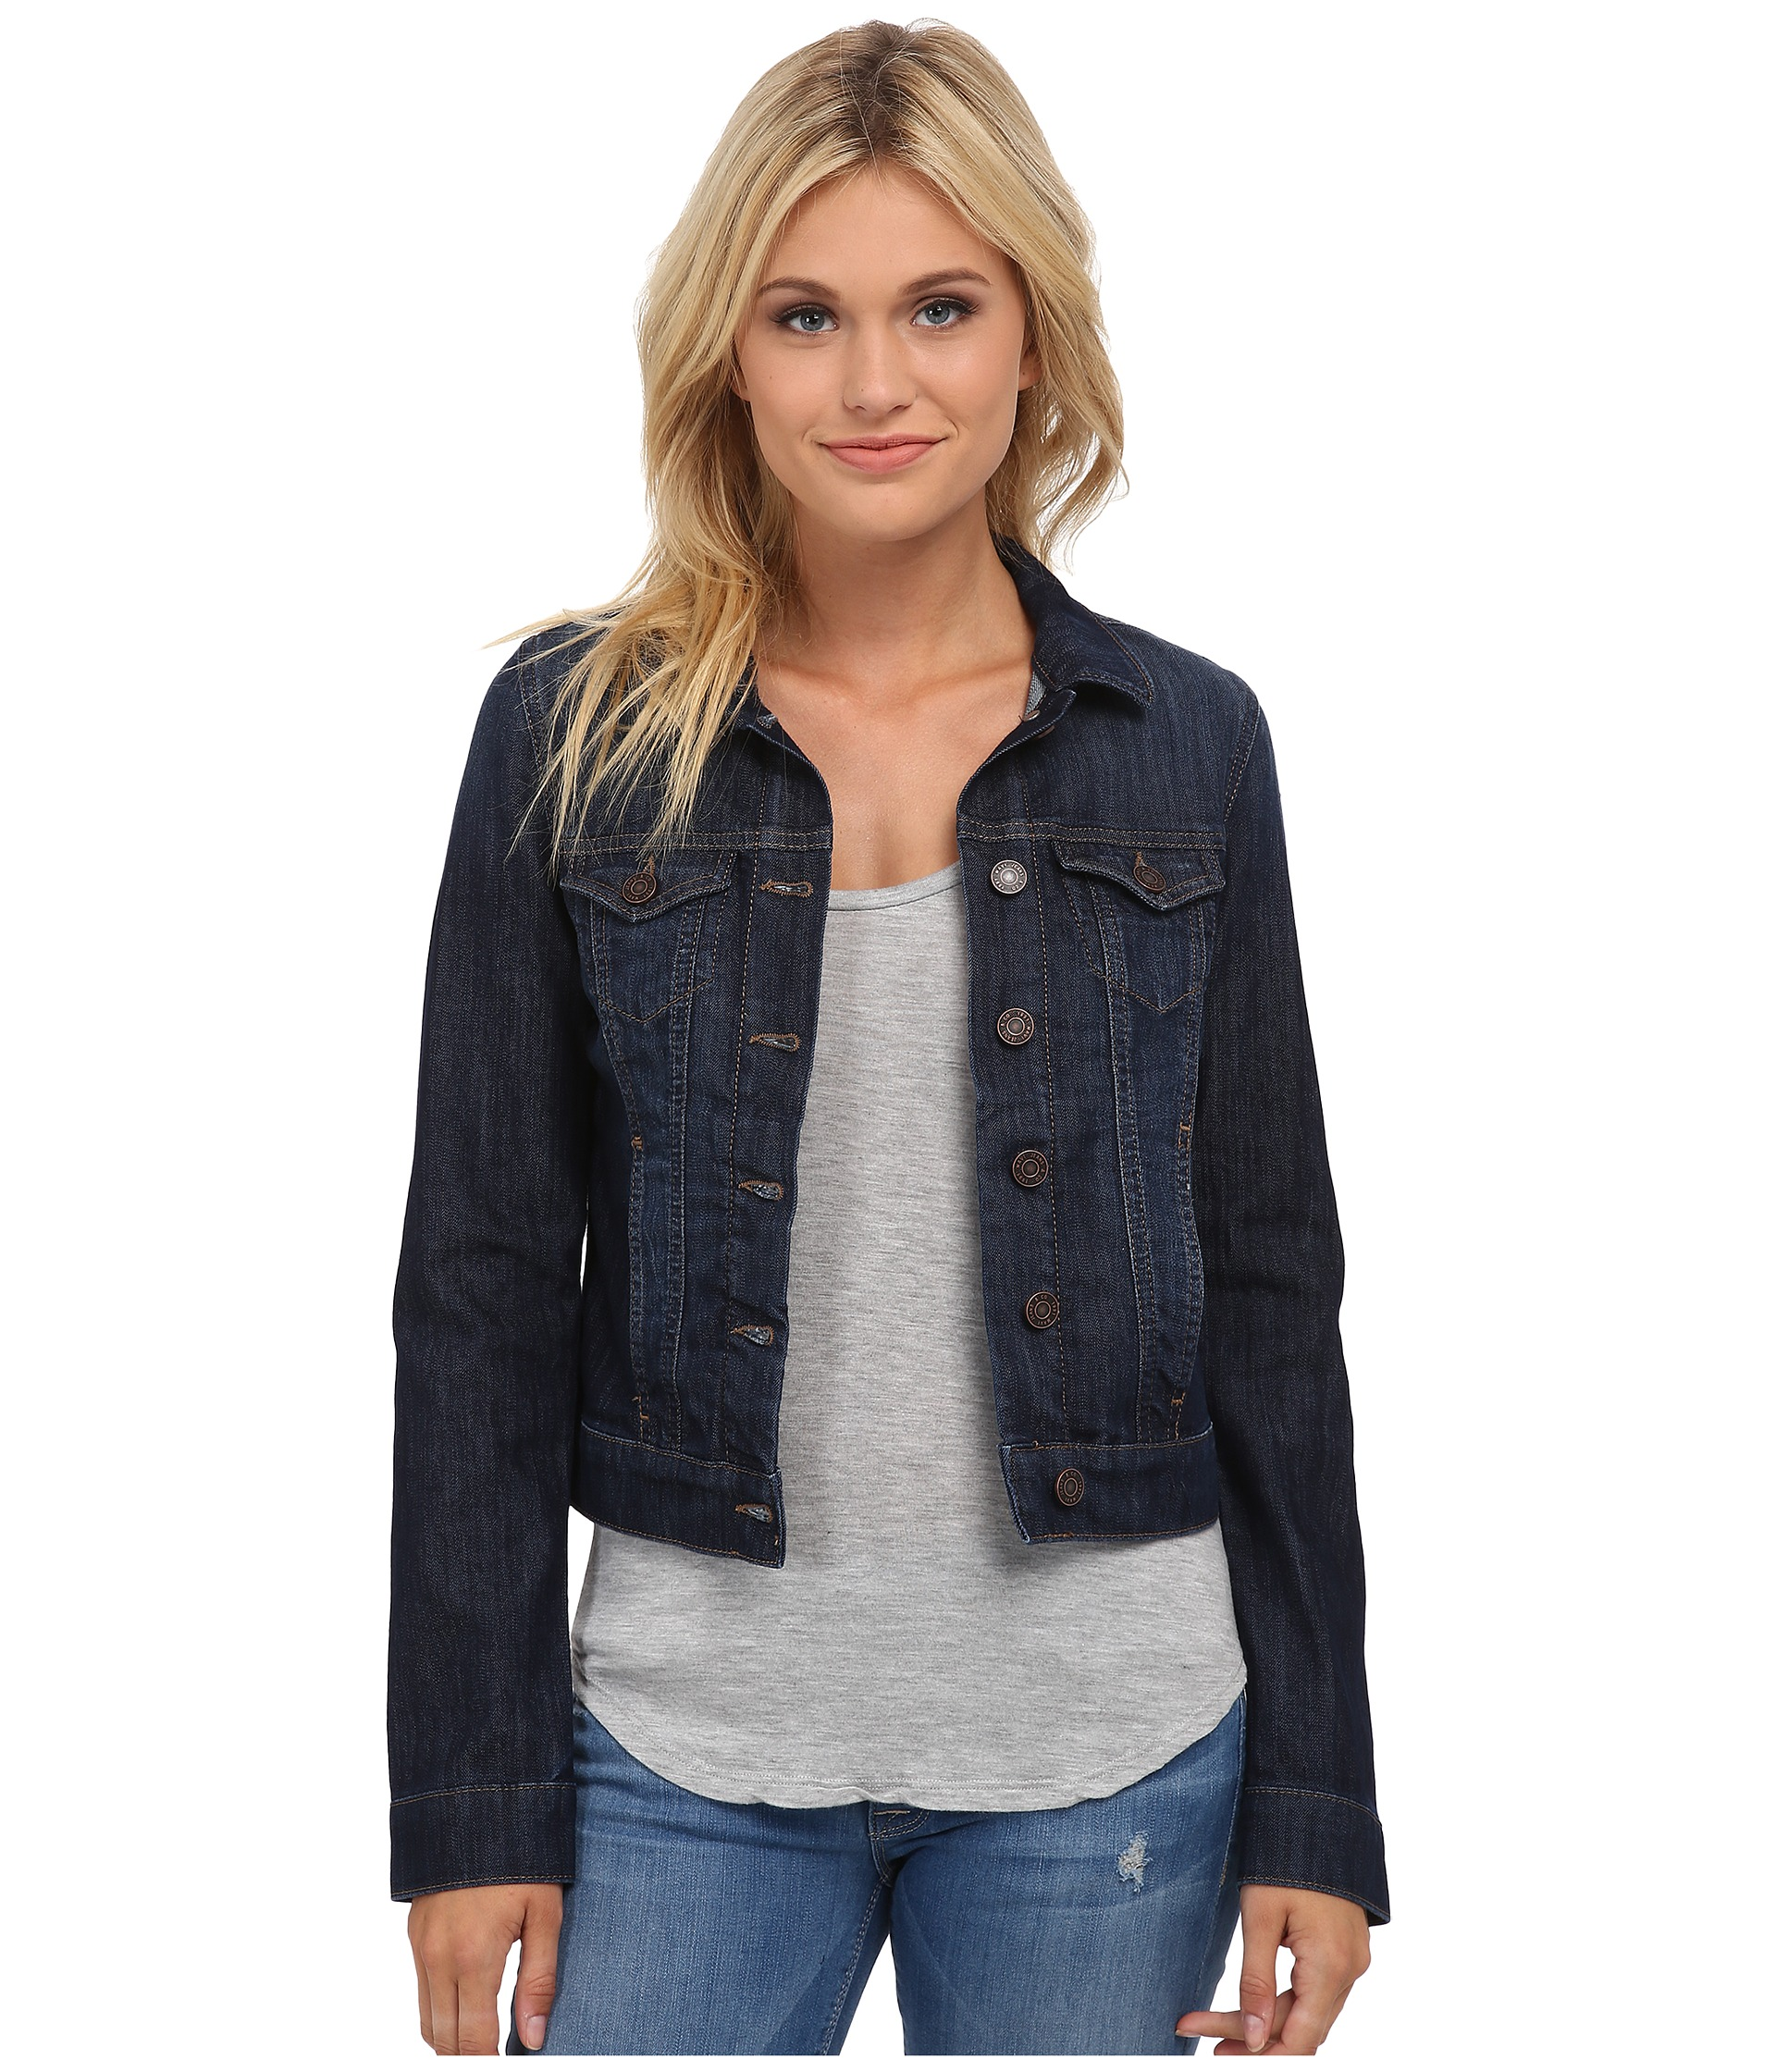 Denim Jackets Clothing | Shipped Free at Zappos